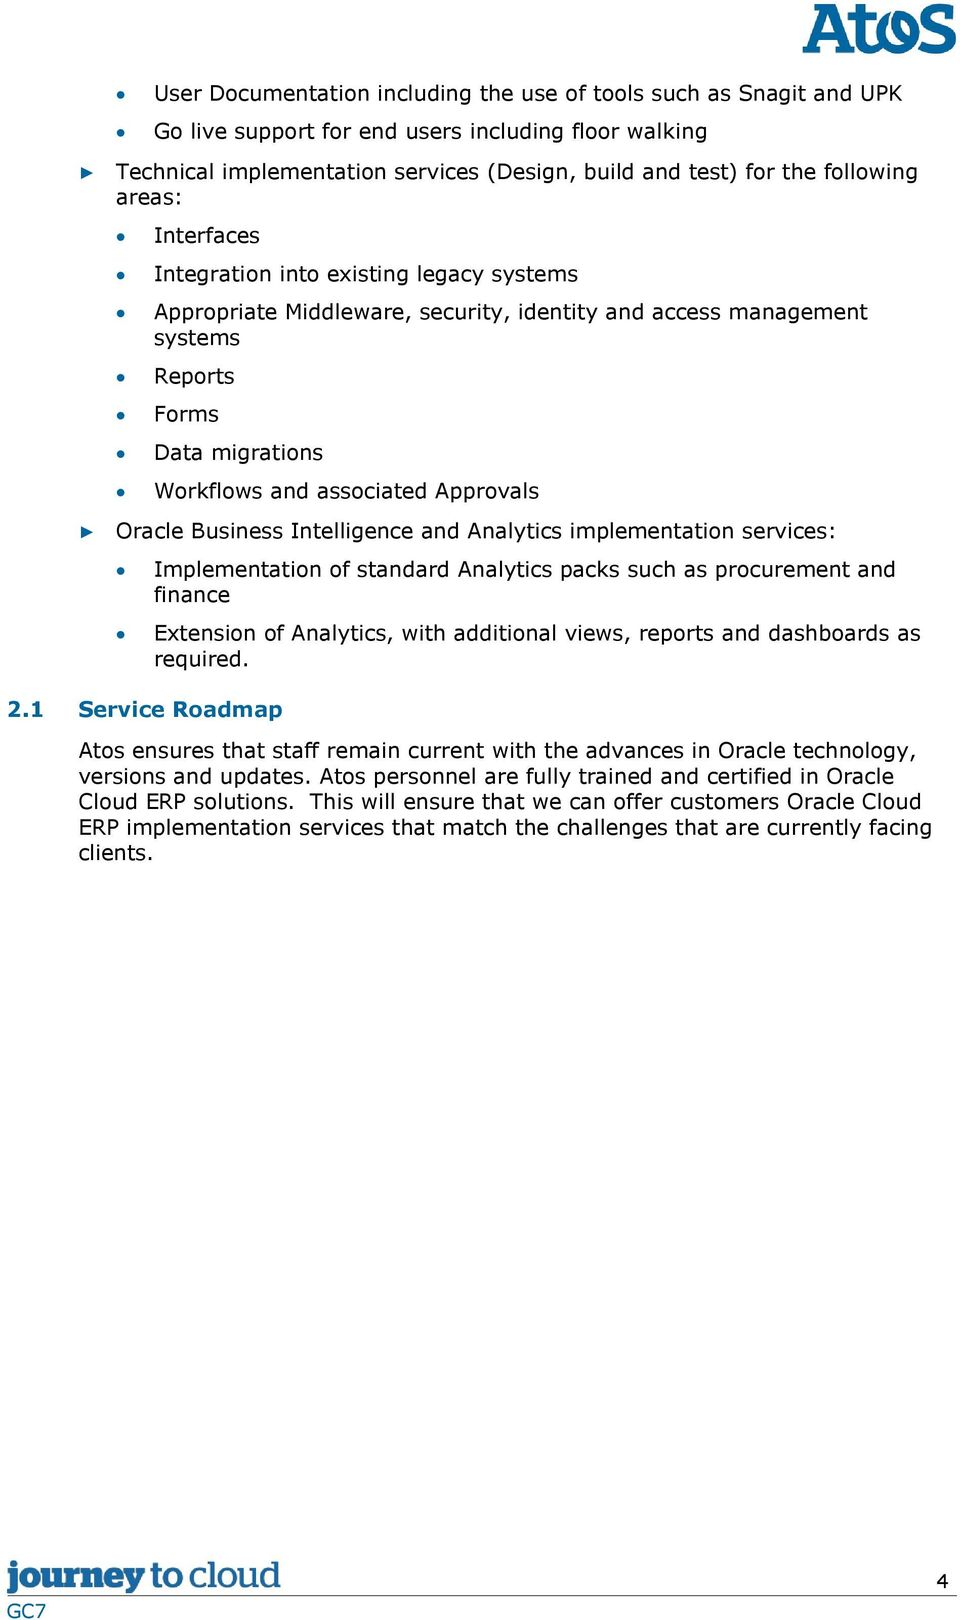 Oracle Business Intelligence and Analytics implementation services: 2.